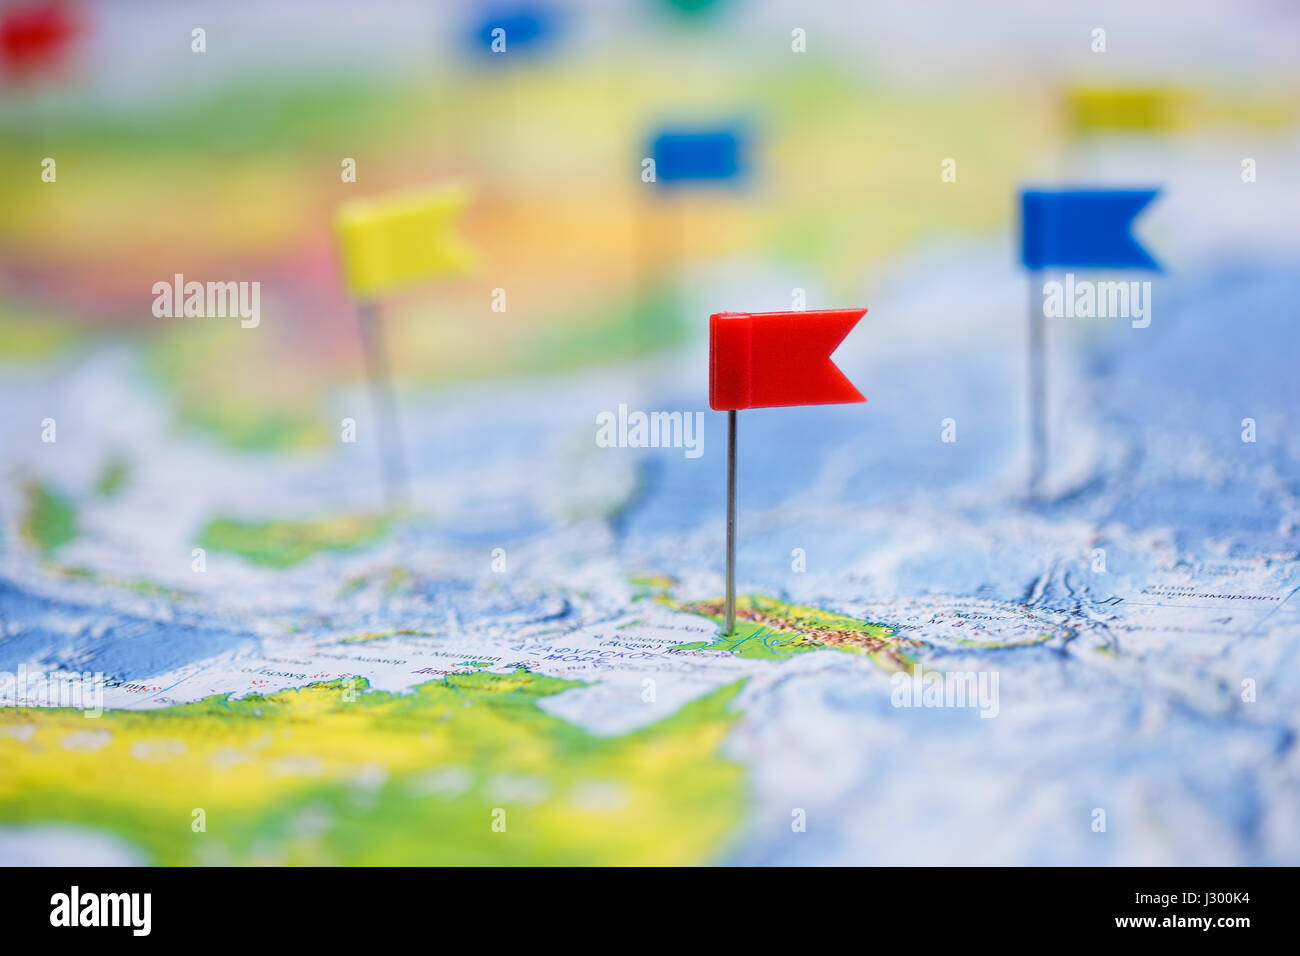 Europe map pin flags stock photos europe map pin flags stock travel concept with flag pushpins and world map stock image gumiabroncs Images